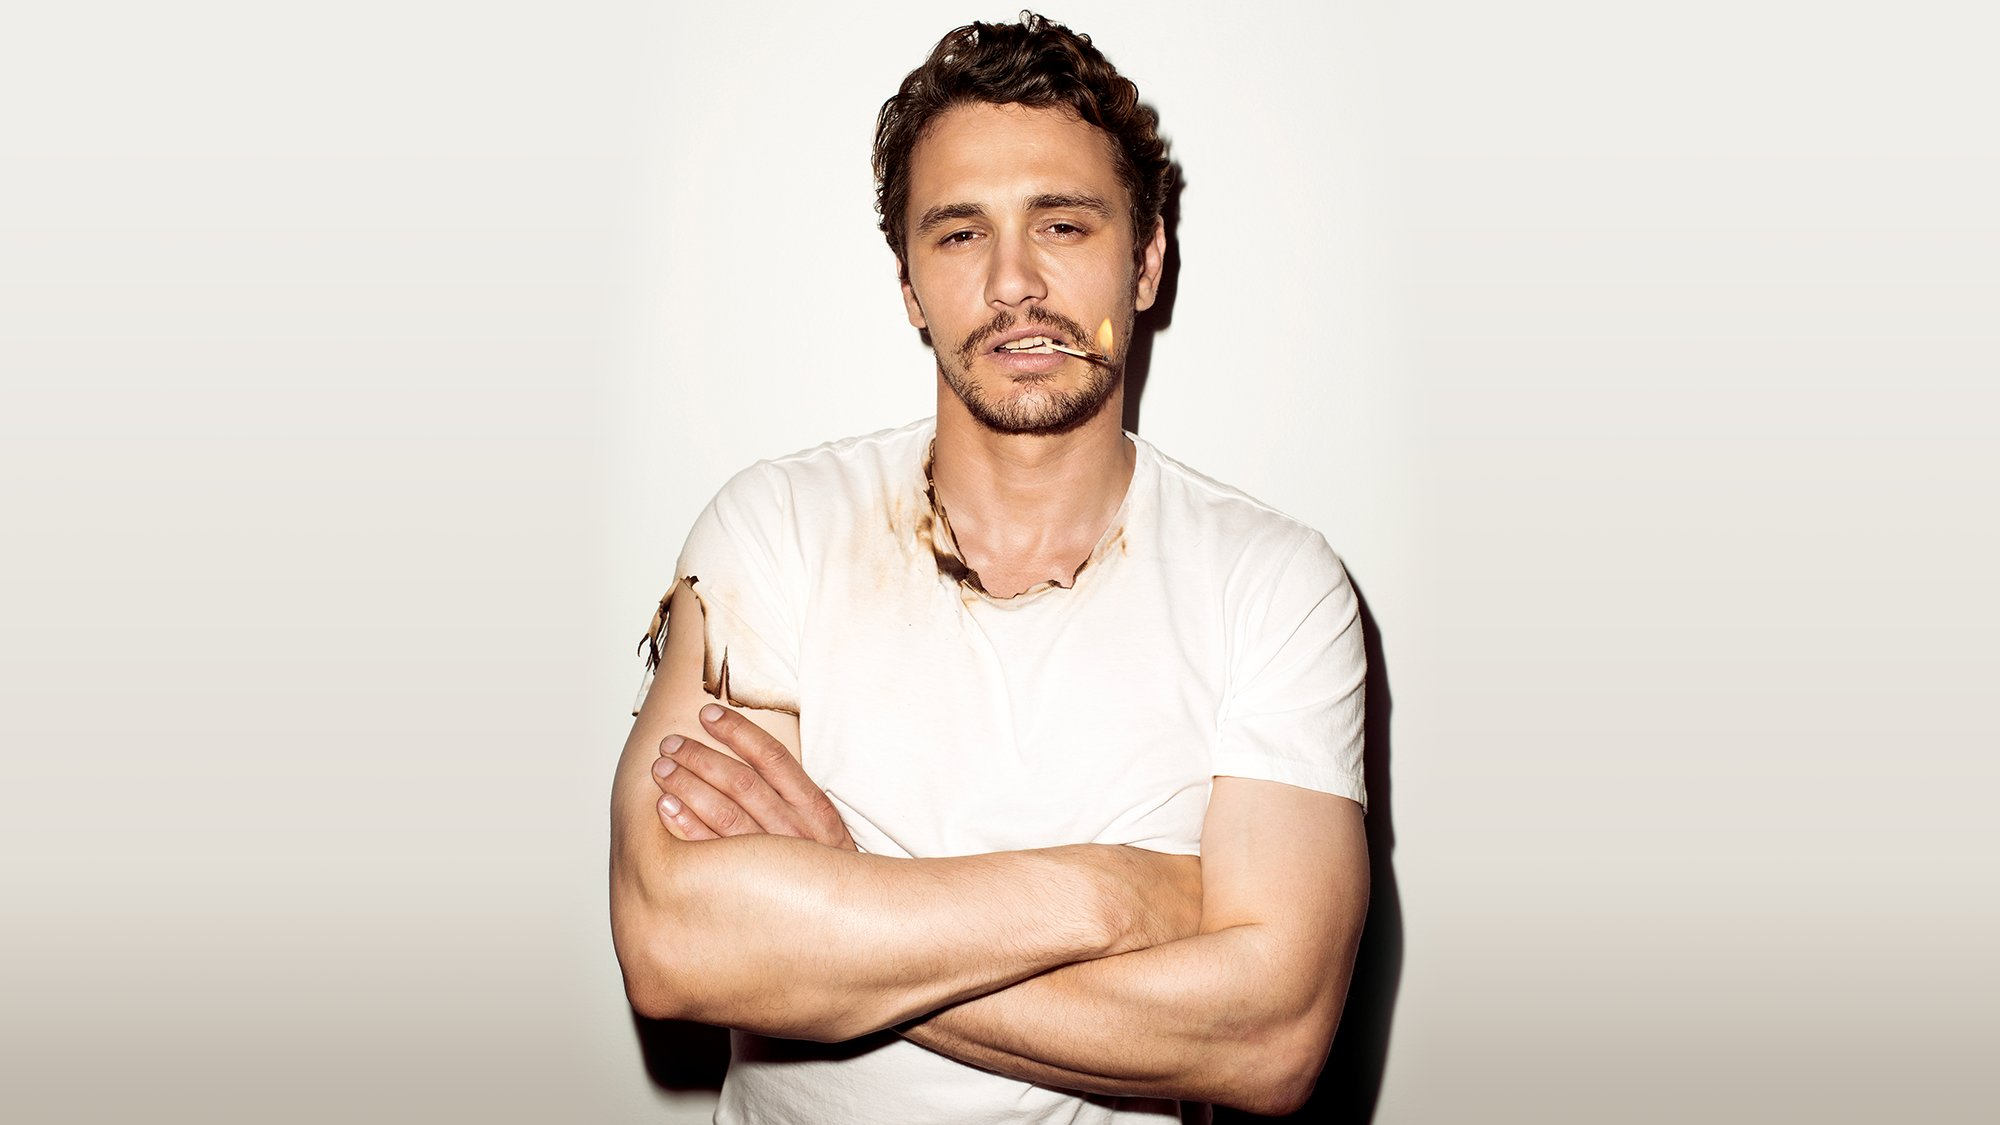 Roast of James Franco